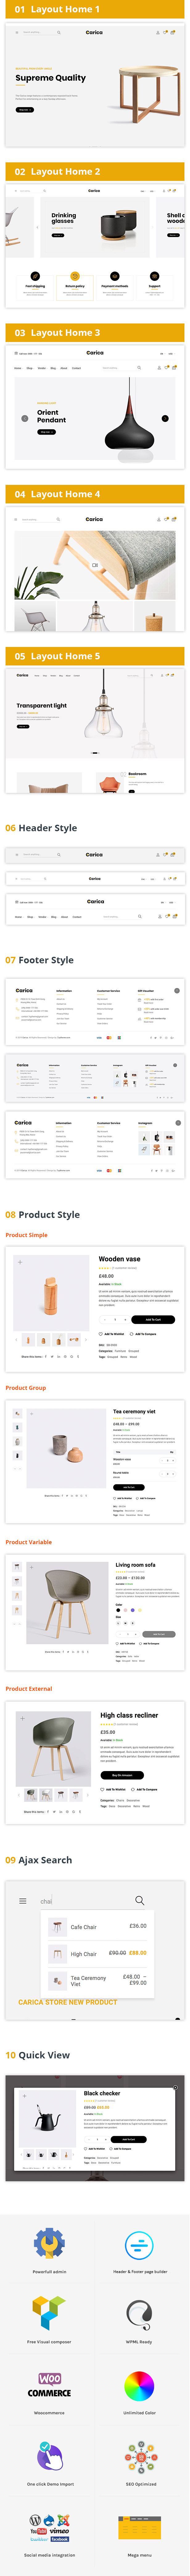 Carica - Furniture Handmade Shop WooCommerce Theme - 4